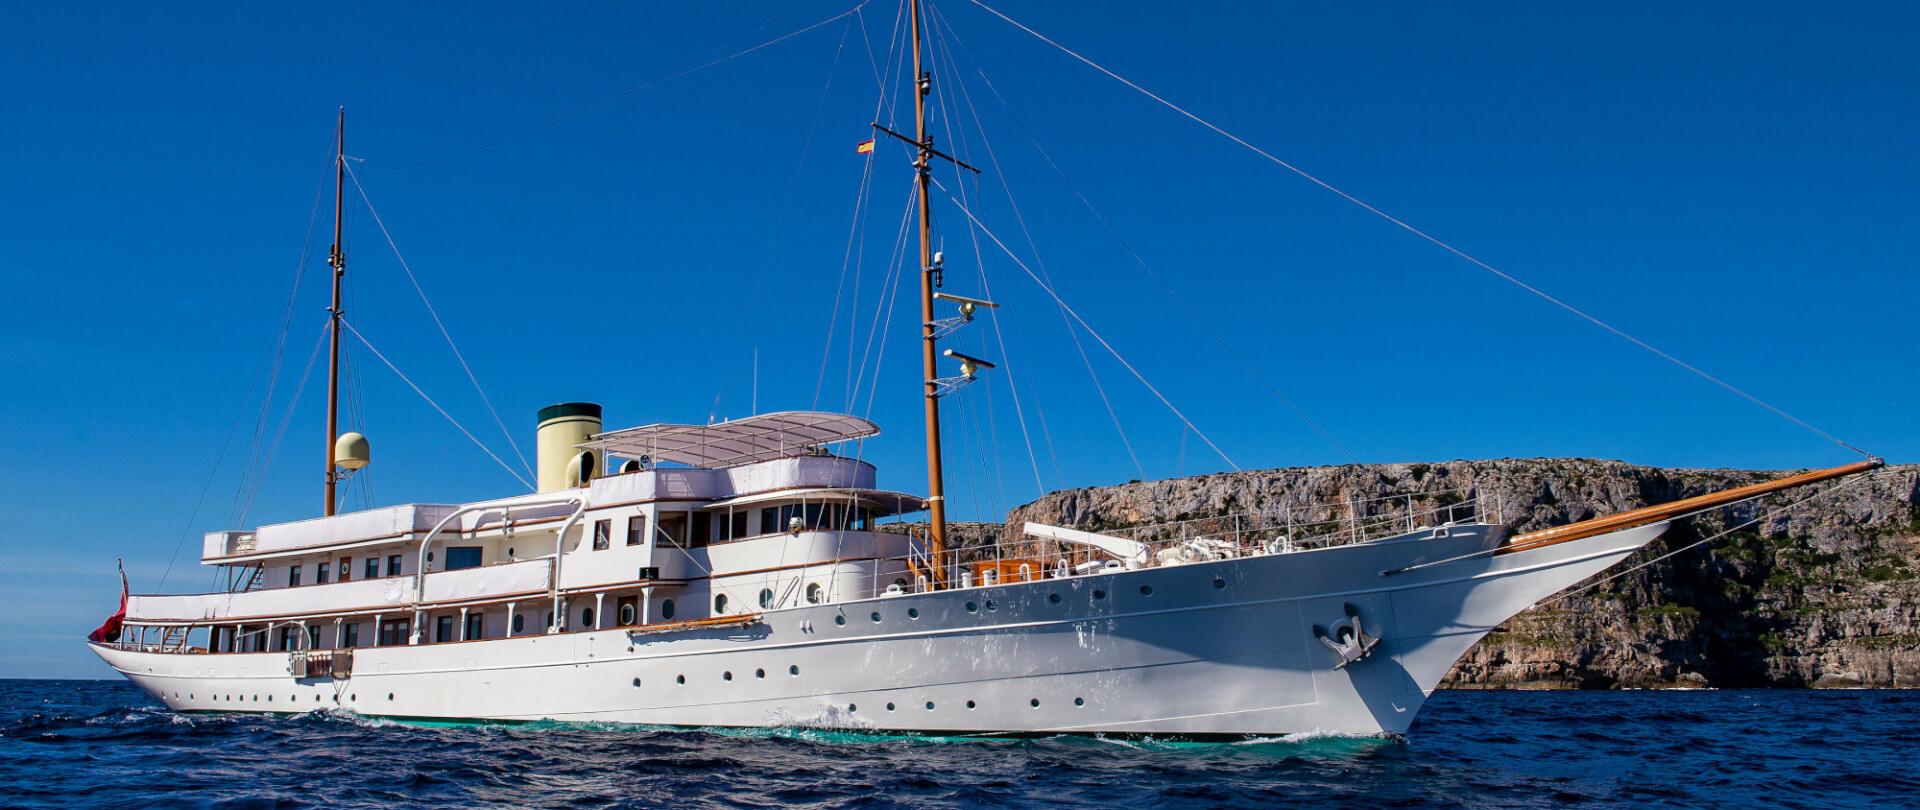 Edmiston wins big at the World Superyacht Awards 2019 photo 1